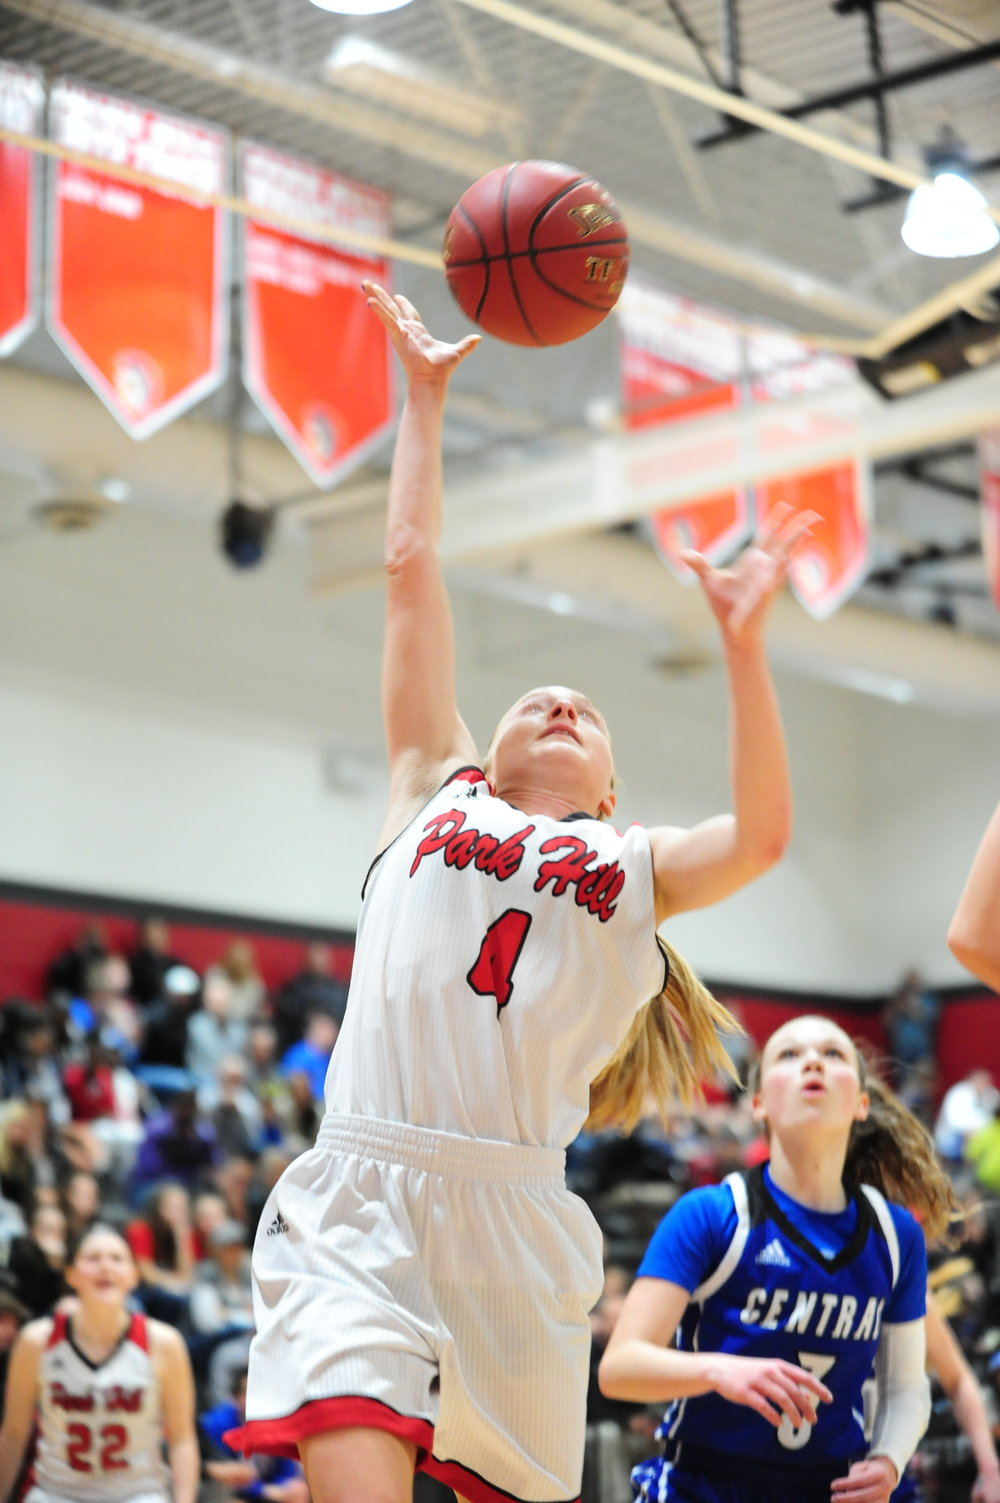 NICK INGRAM/Citizen photo Park Hill junior Ali Walls (4) goes up for a shot against St. Joseph Central in the Class 5 District 16 championship game Thursday, March 2 at Park Hill High School in Kansas City, Mo.